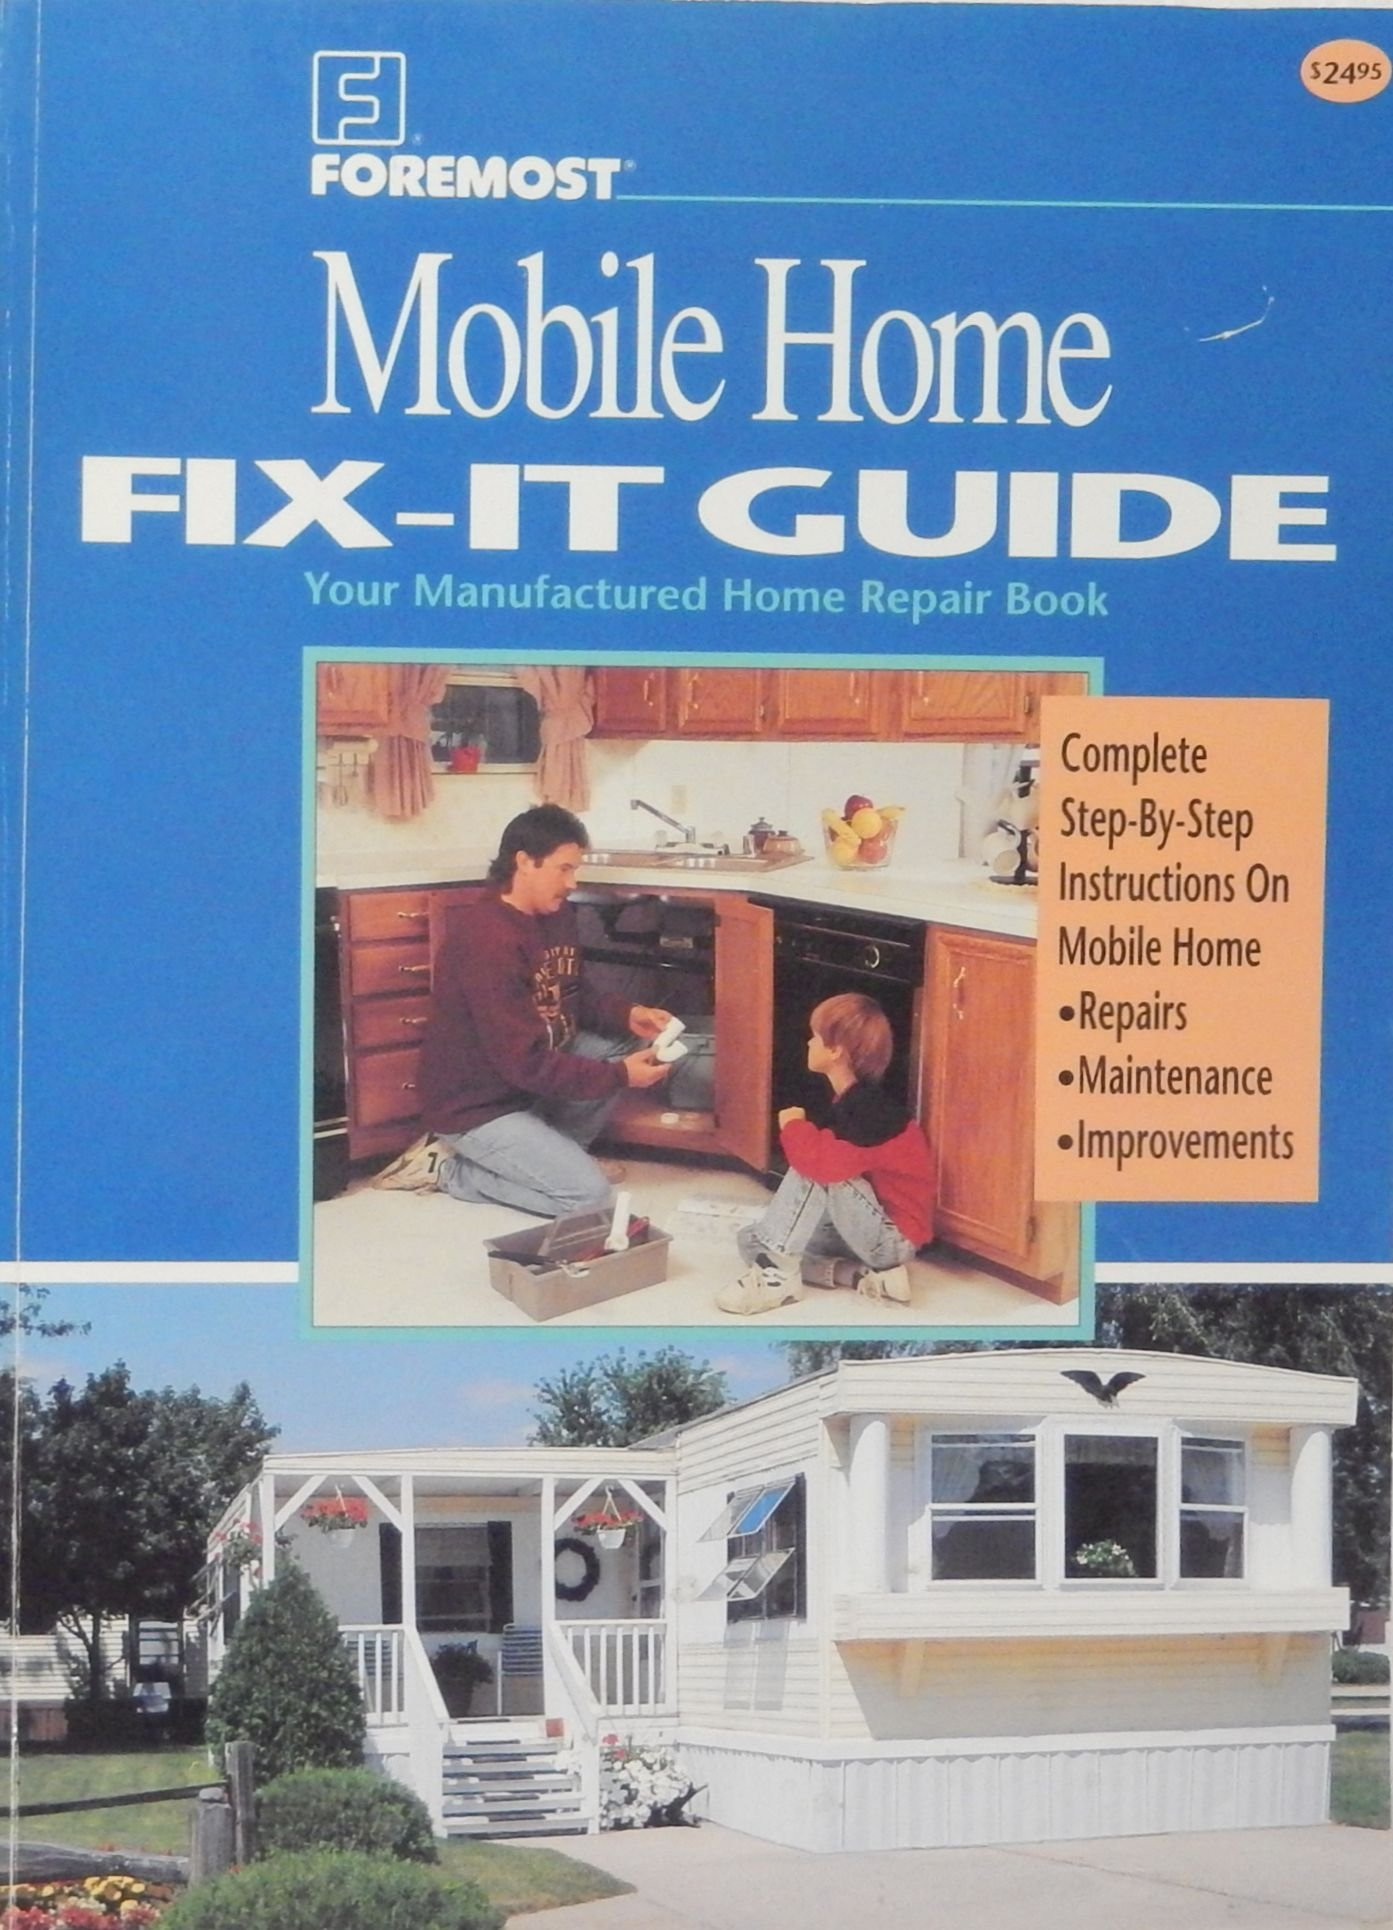 Design Your Mobile Home on manufactured house designs, humble home designs, motor home designs, multi home designs, michigan home designs, richmond home designs, manufactured home designs, country home designs, temporary home designs, 4-plex home designs, vertical home designs, eastern shore home designs, modular home designs, cheapest home designs, city home designs, gulf coast home designs, cottage designs, motor club designs, 2 story designs, bing home designs,